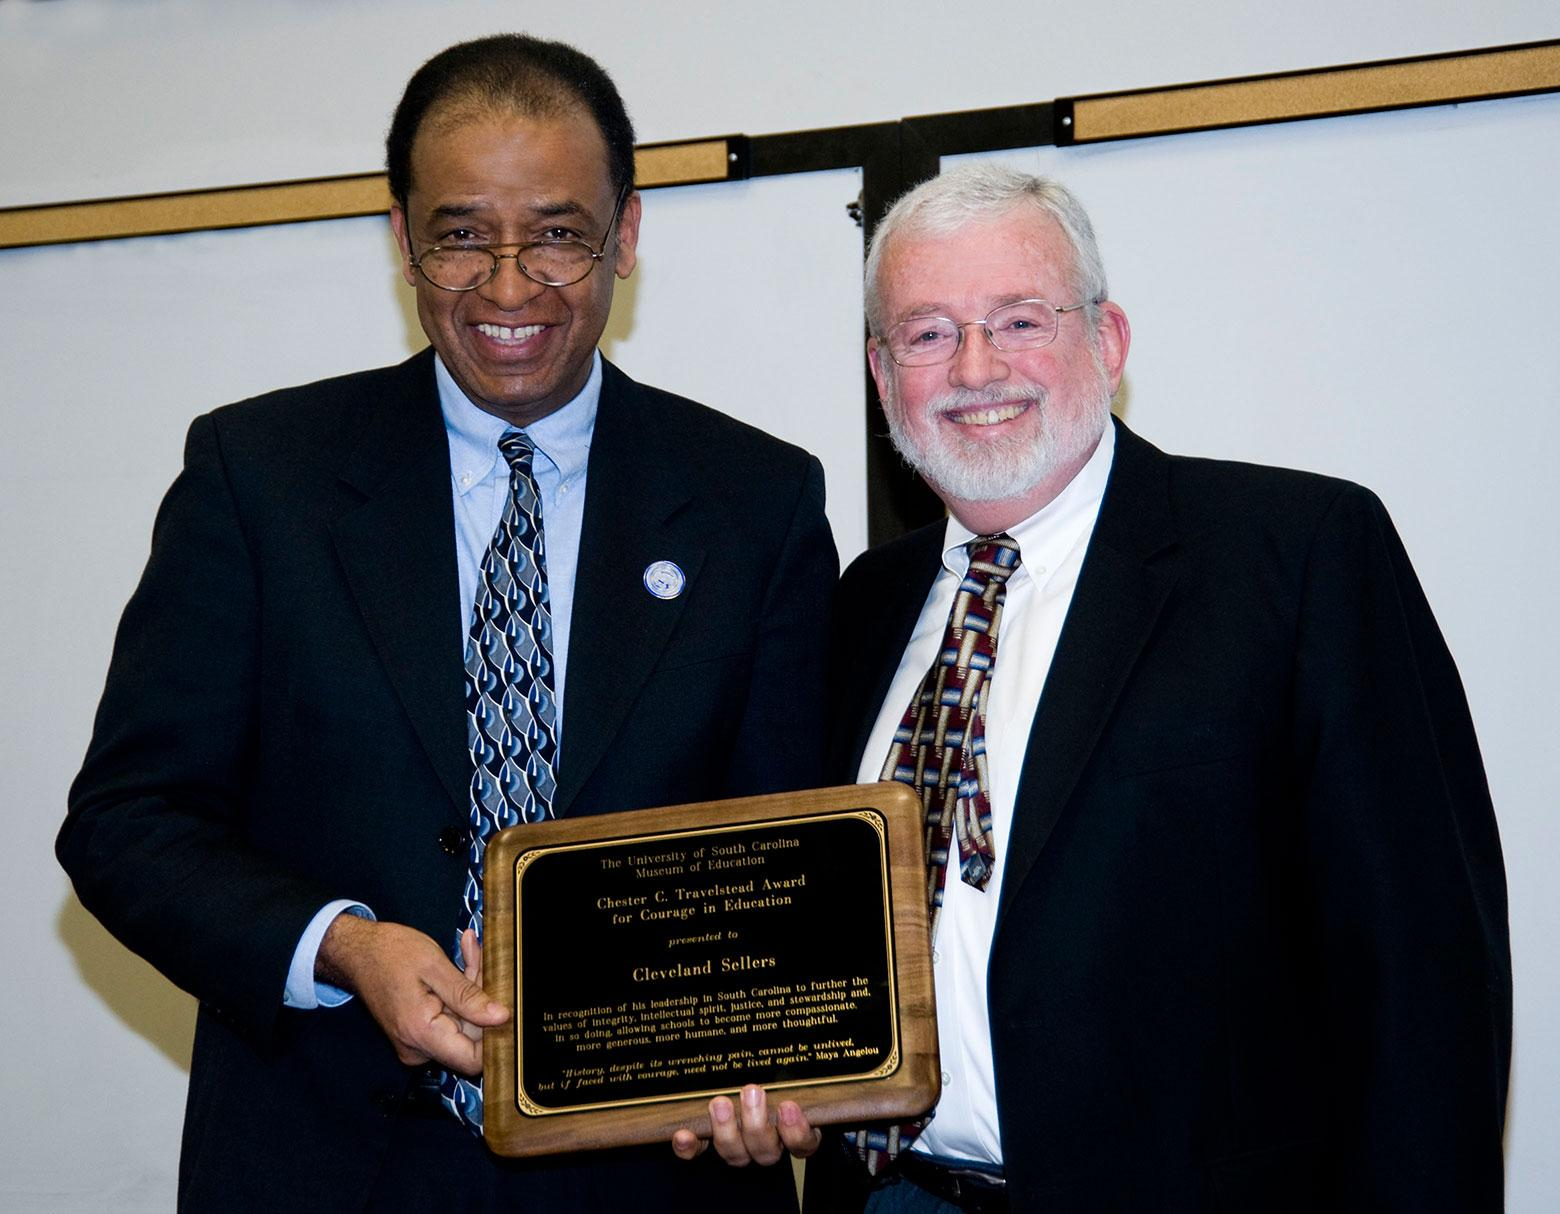 Cleveland L. Sellers Jr. (l) accepting the Travelstead Award for Courage in Education from Coleman Travelstead, the son of Chester C. Travelstead